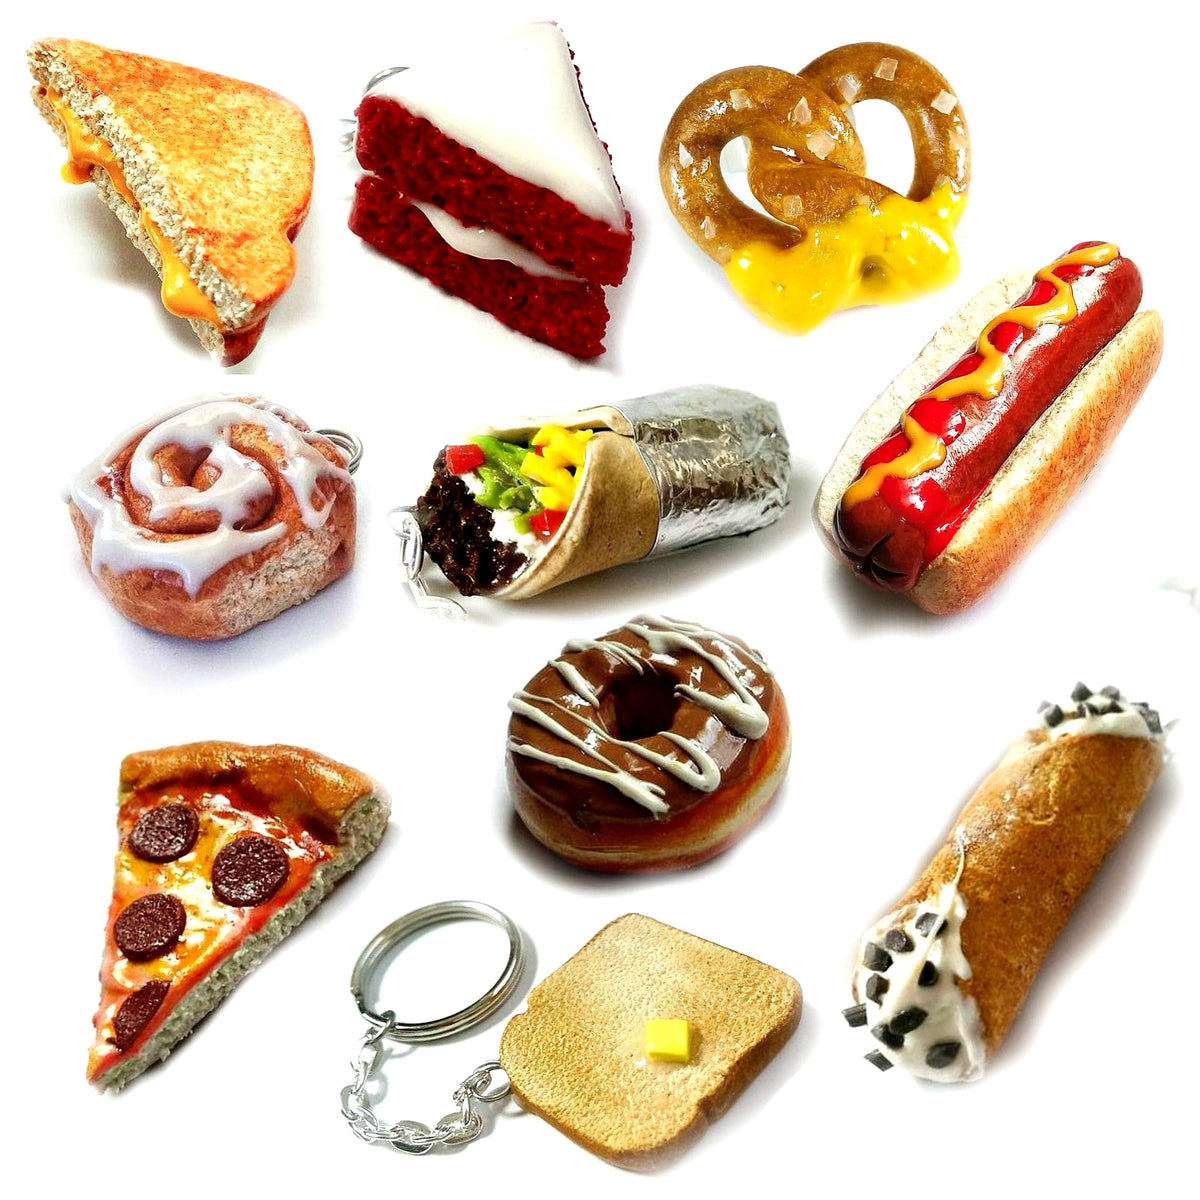 wholesale mini food keychain usa, wholesale food jewelry USA, polymer clay food jewelry ,realistic fake food jewelry, handmade cute food jewelry, foodie jewelry, food jewelry, polymer clay food jewelry